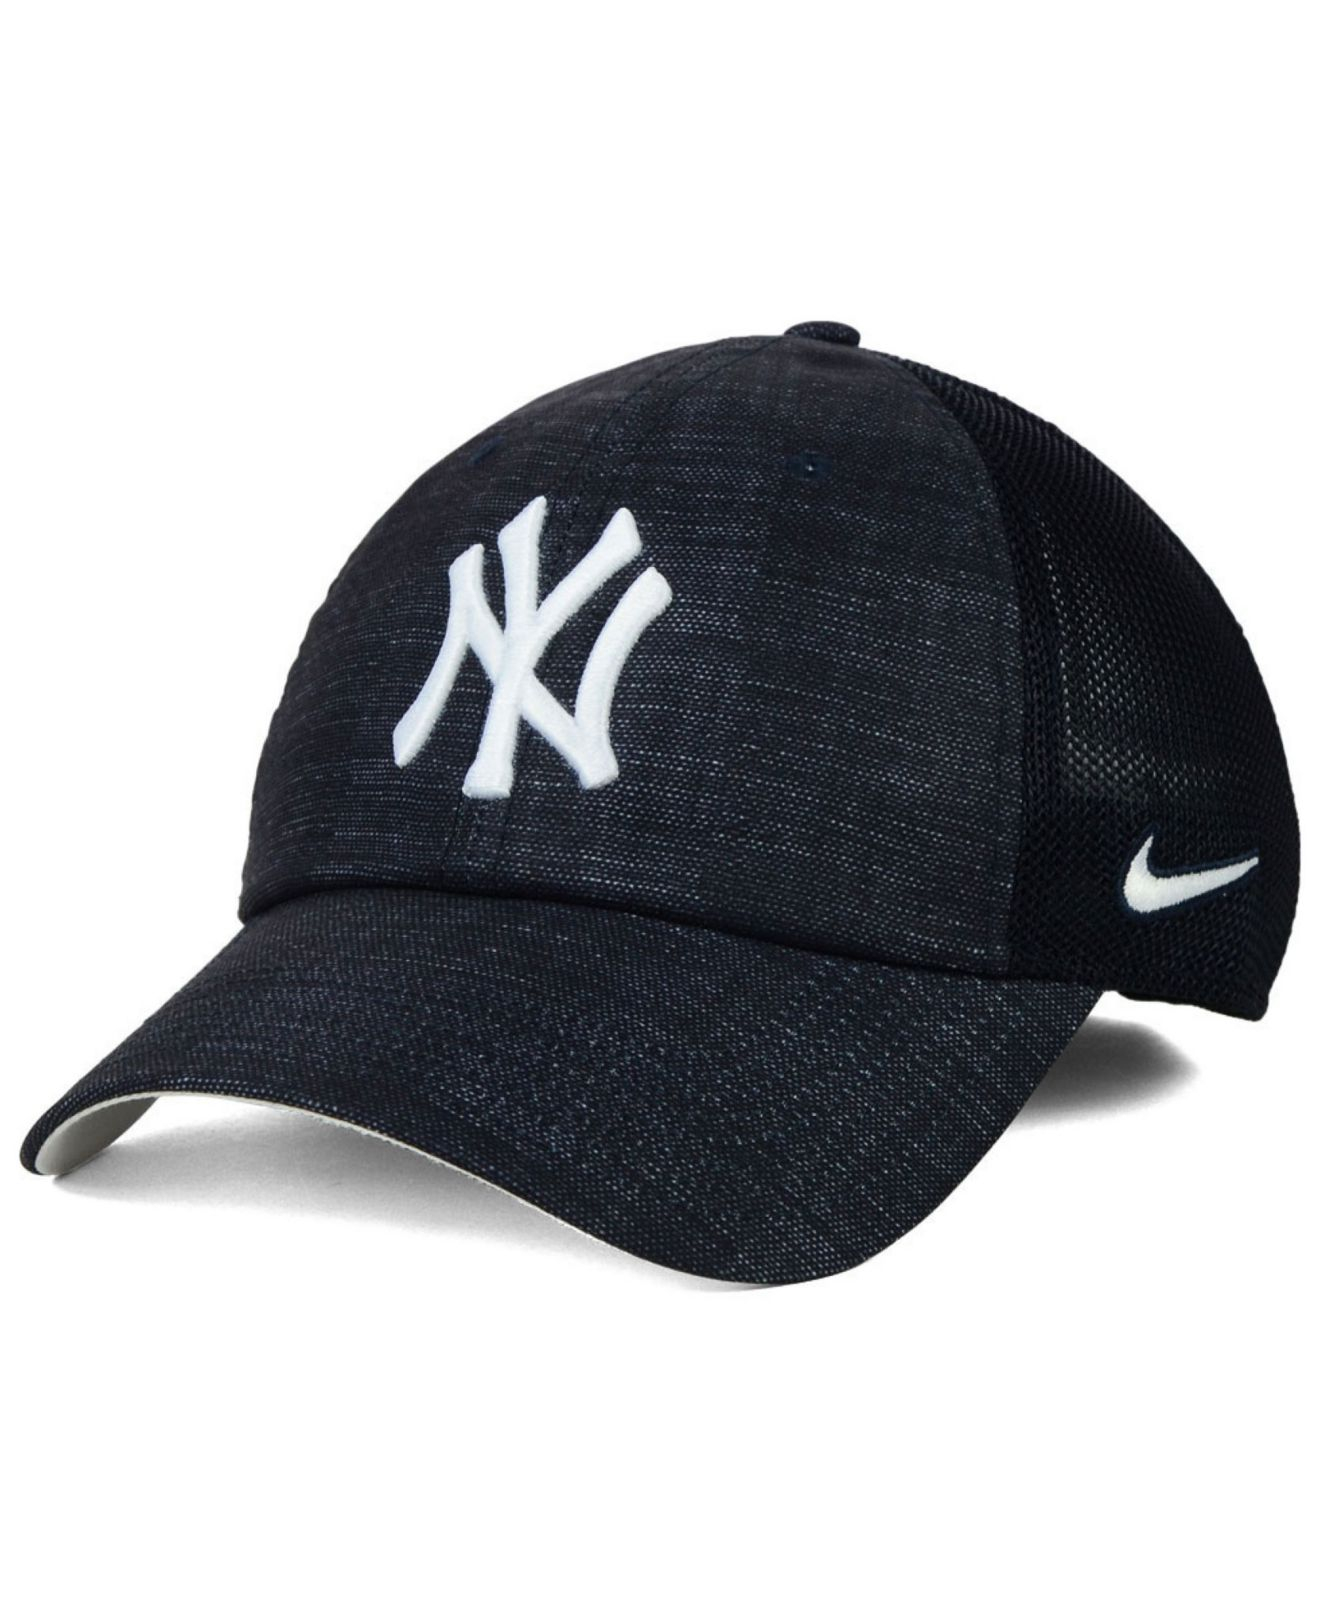 Lyst - Nike New York Yankees Dri-fit Adjustable Cap in Blue for Men d062fc726ee